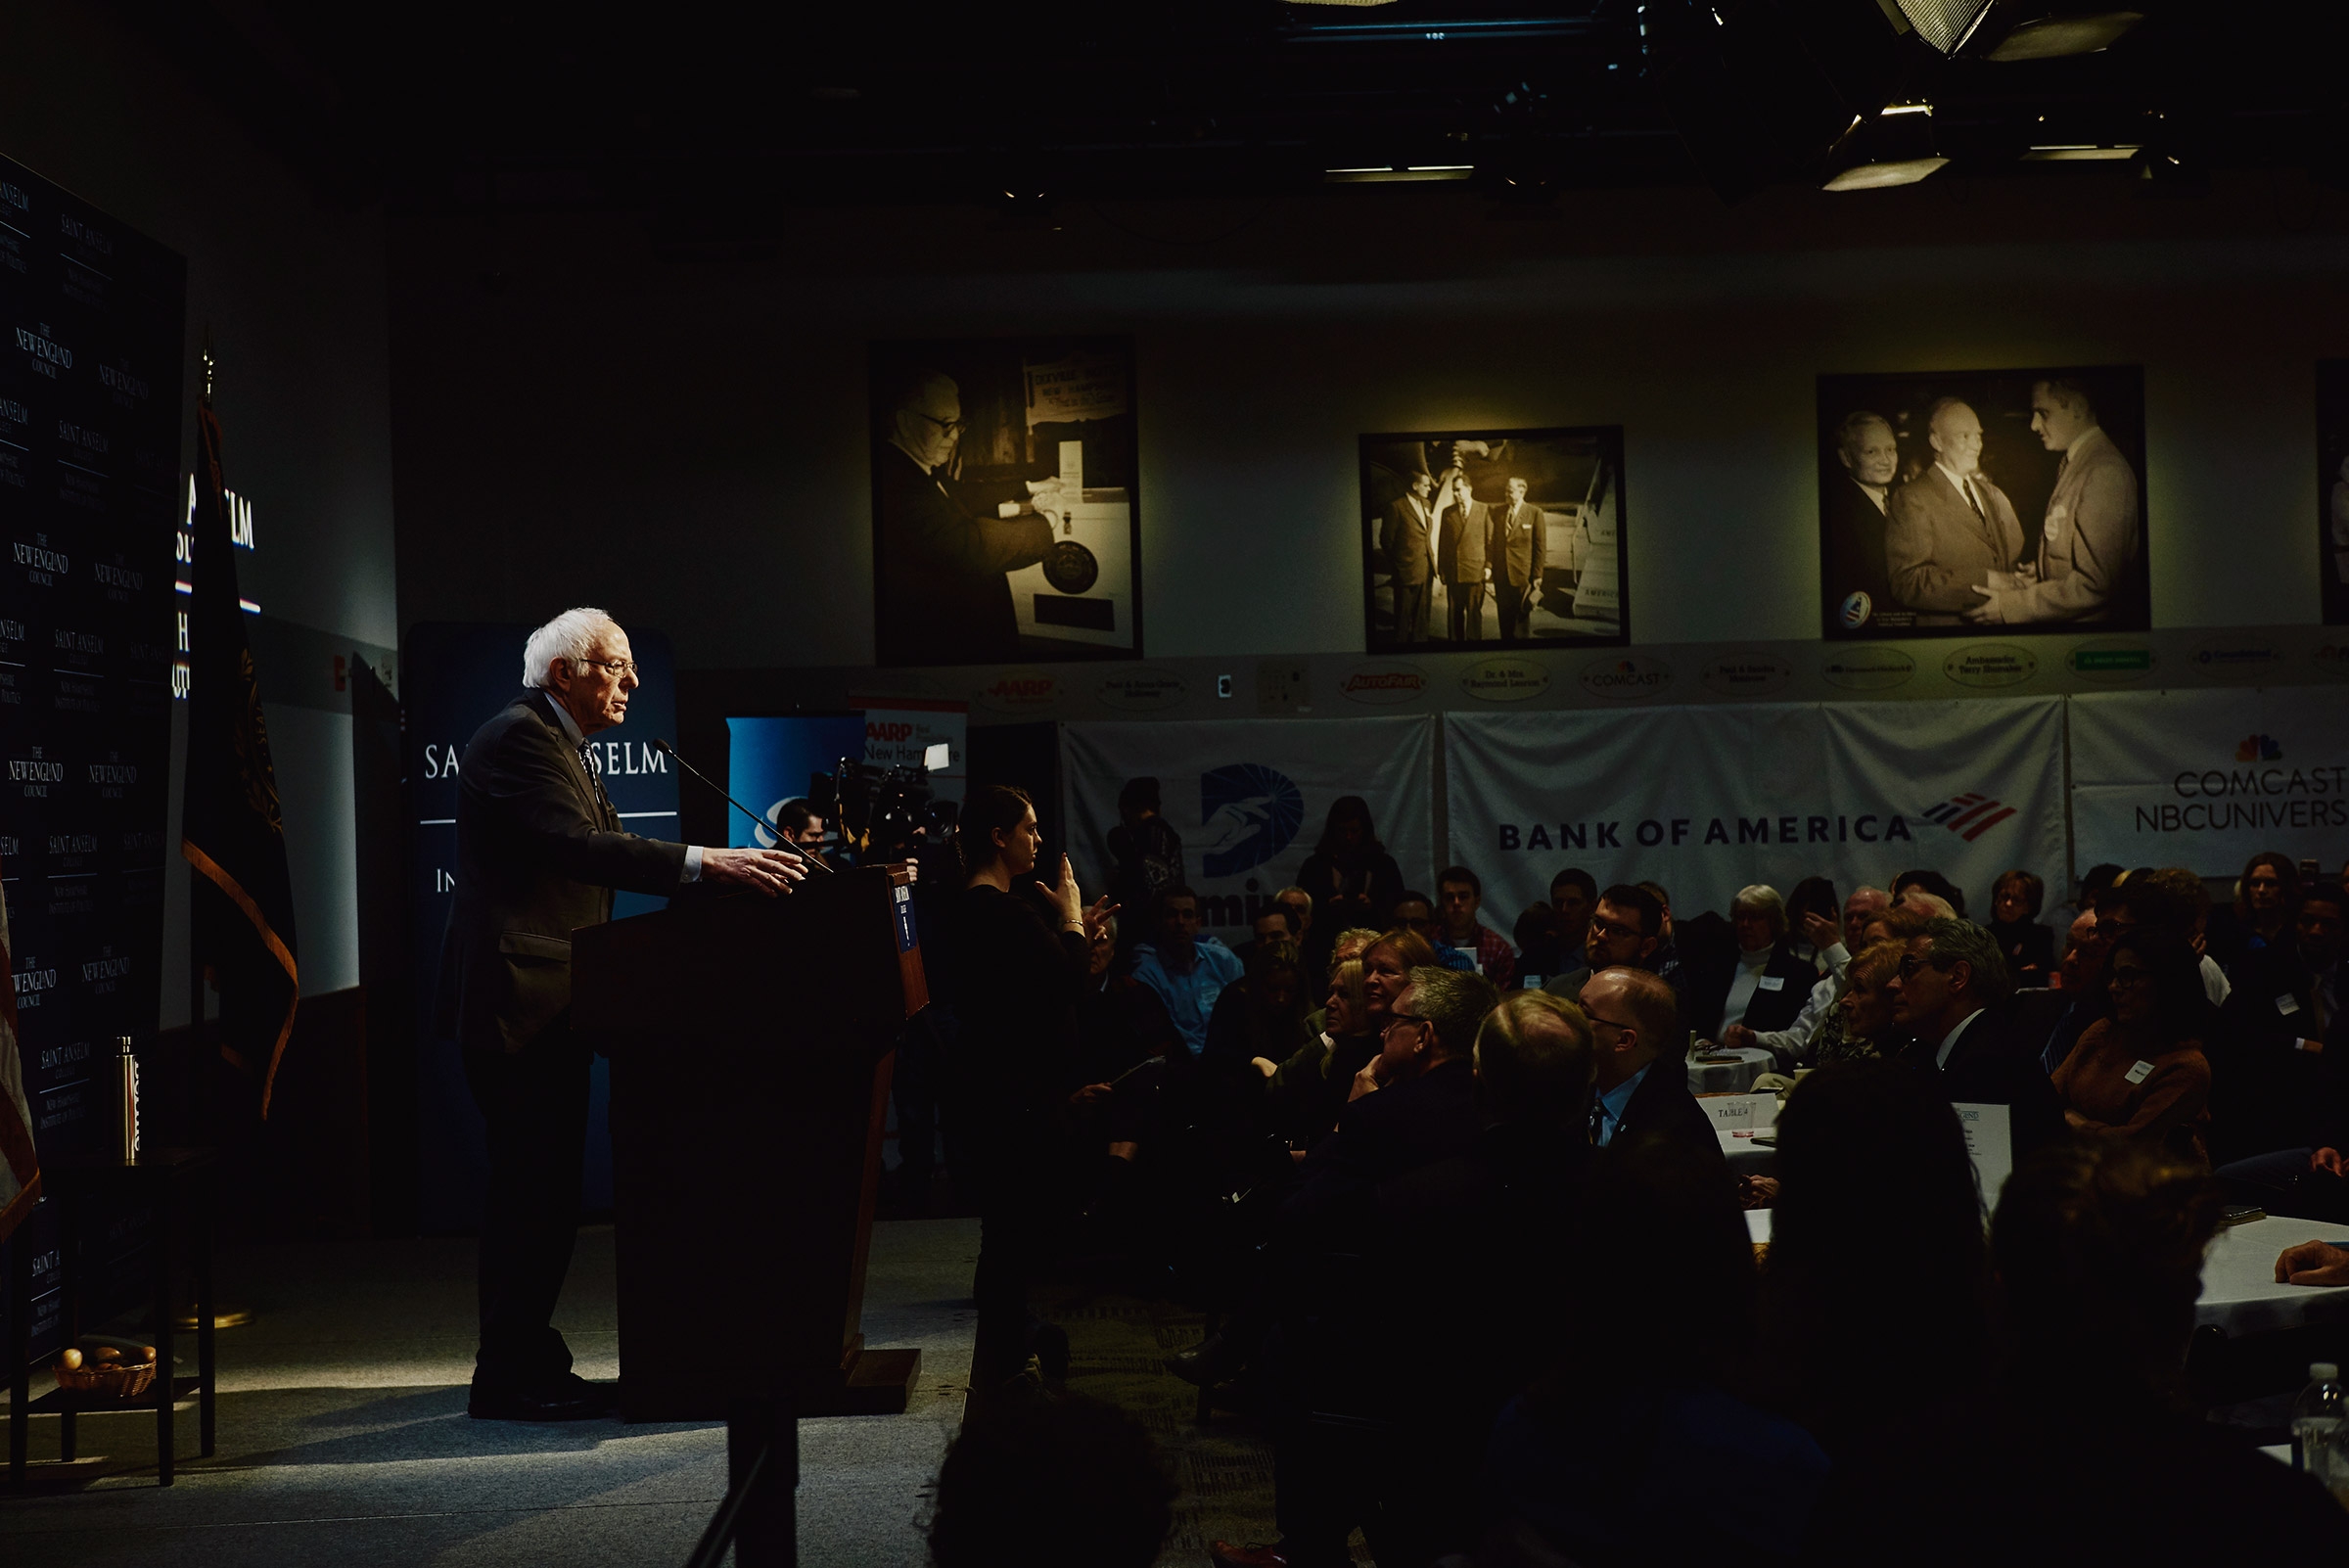 Bernie Sanders speaks at his Politics and Eggs event at The New Hampshire Institute of Politics at Saint Anselm College in Manchester, N.H. on Feb. 7, 2020.